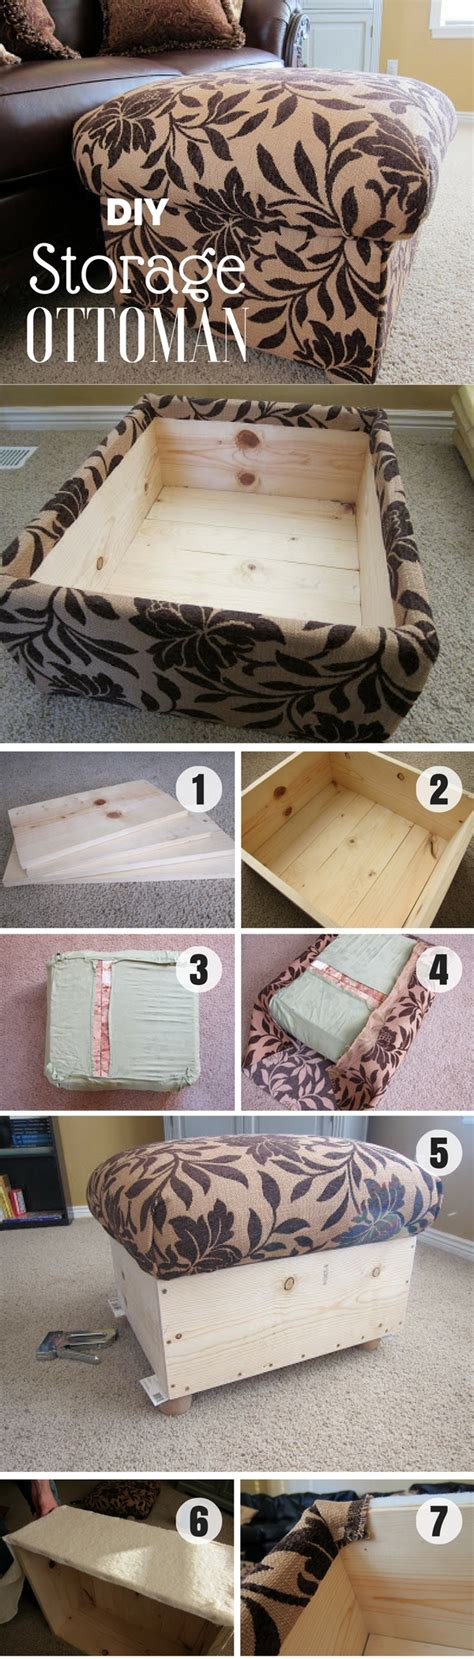 make your own pouf ottoman 15 easy diy ottoman ideas you can make on a budget